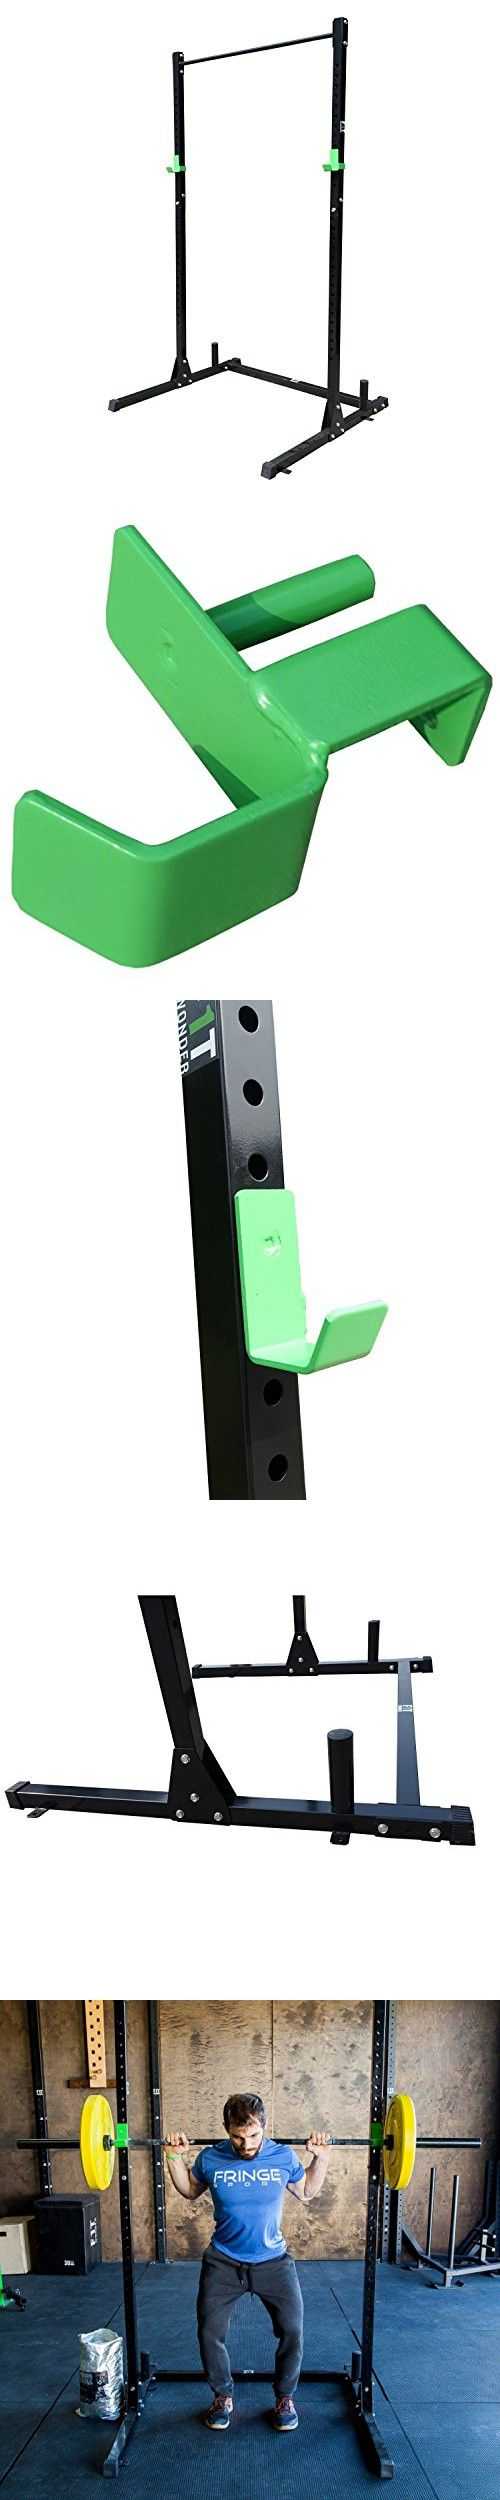 Squat Rack with Pullup Bar by OneFitWonder Life Series